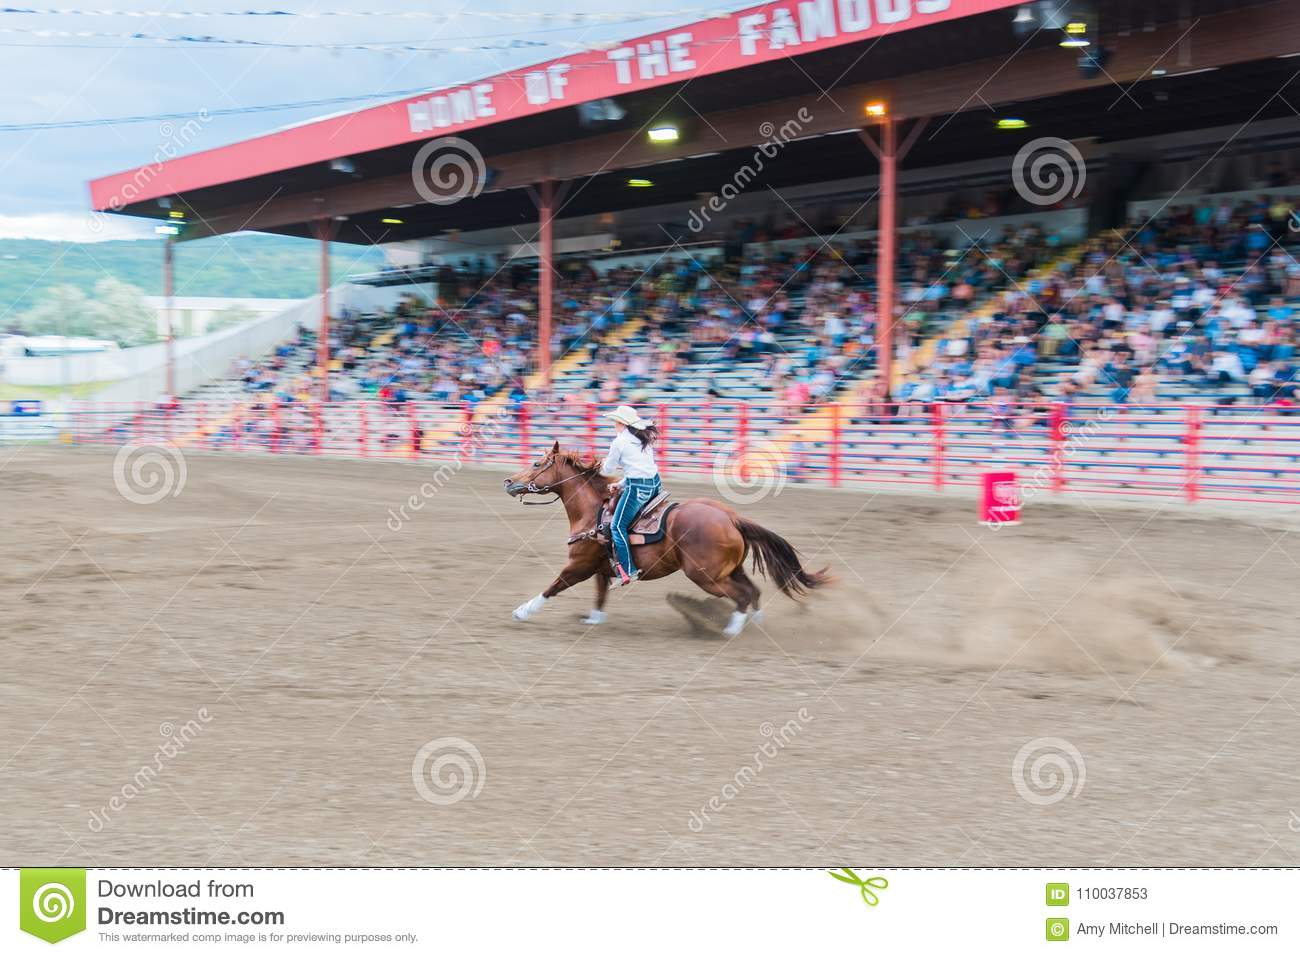 Woman And Horse Race Through Arena At Barrel Racing Competition Editorial Stock Photo Image Of Brown 90th 110037853